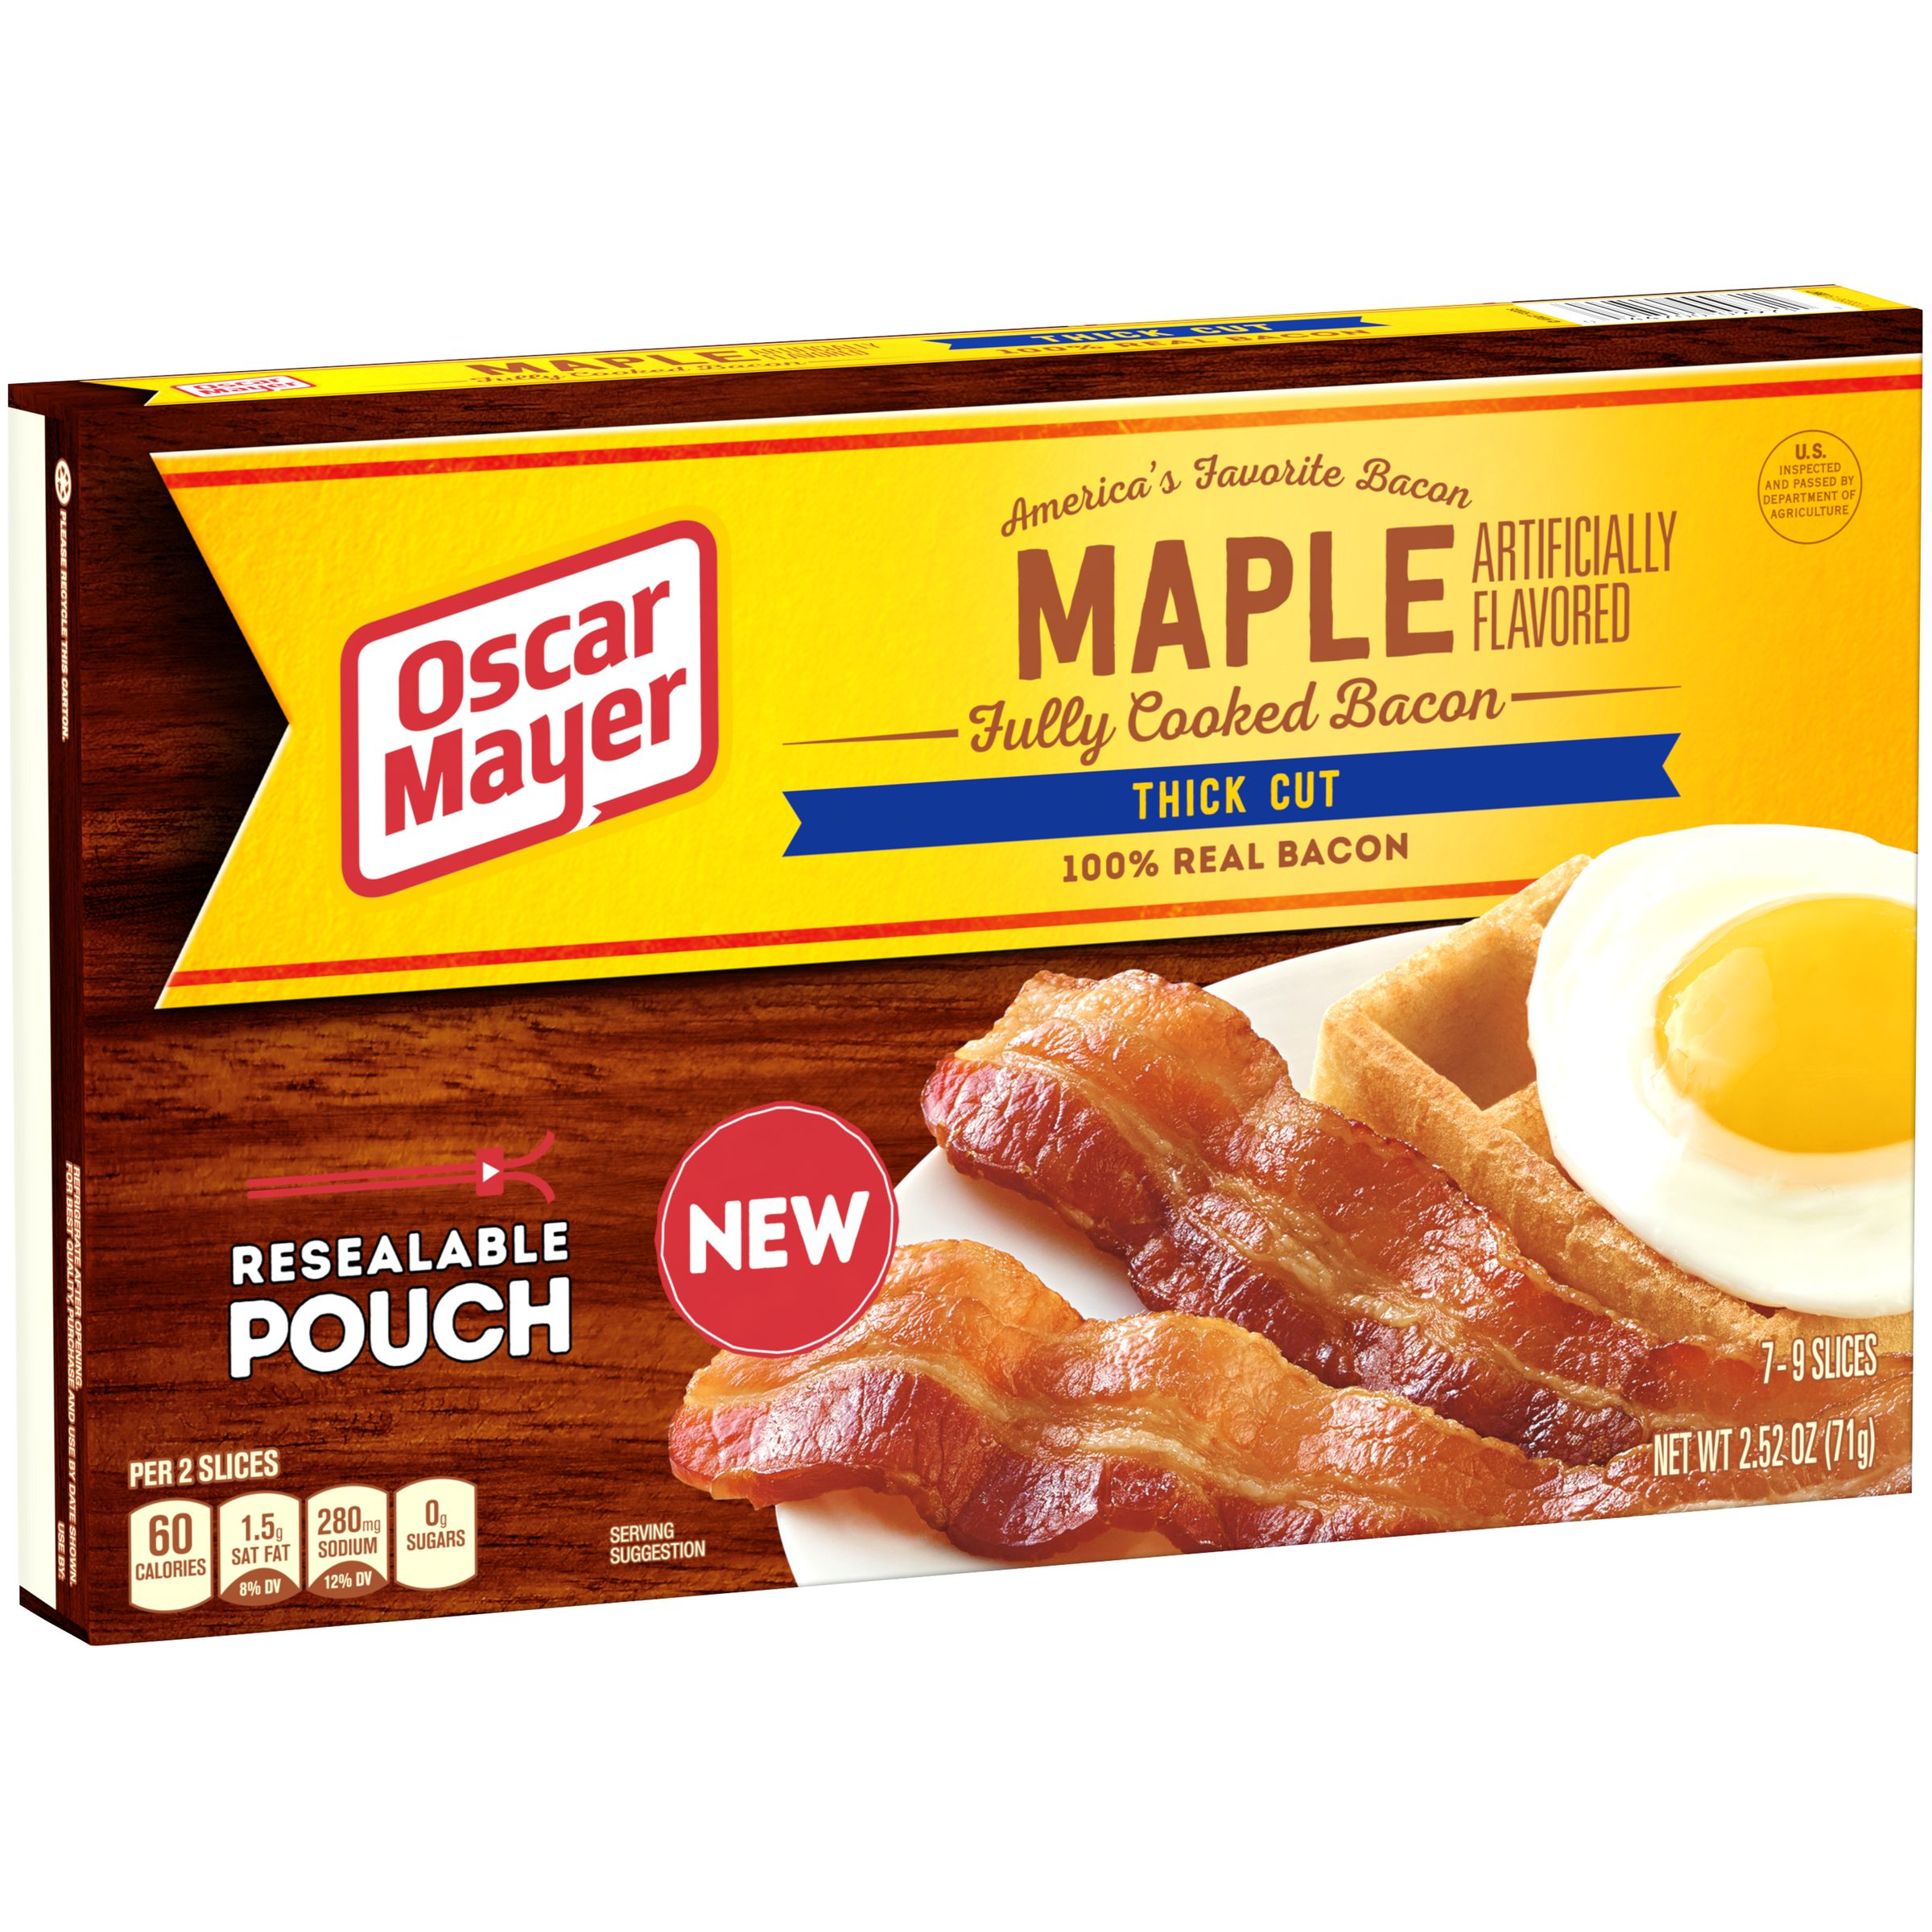 Oscar Mayer Fully Cooked Thick Cut Maple Bacon, 2.5 Oz.